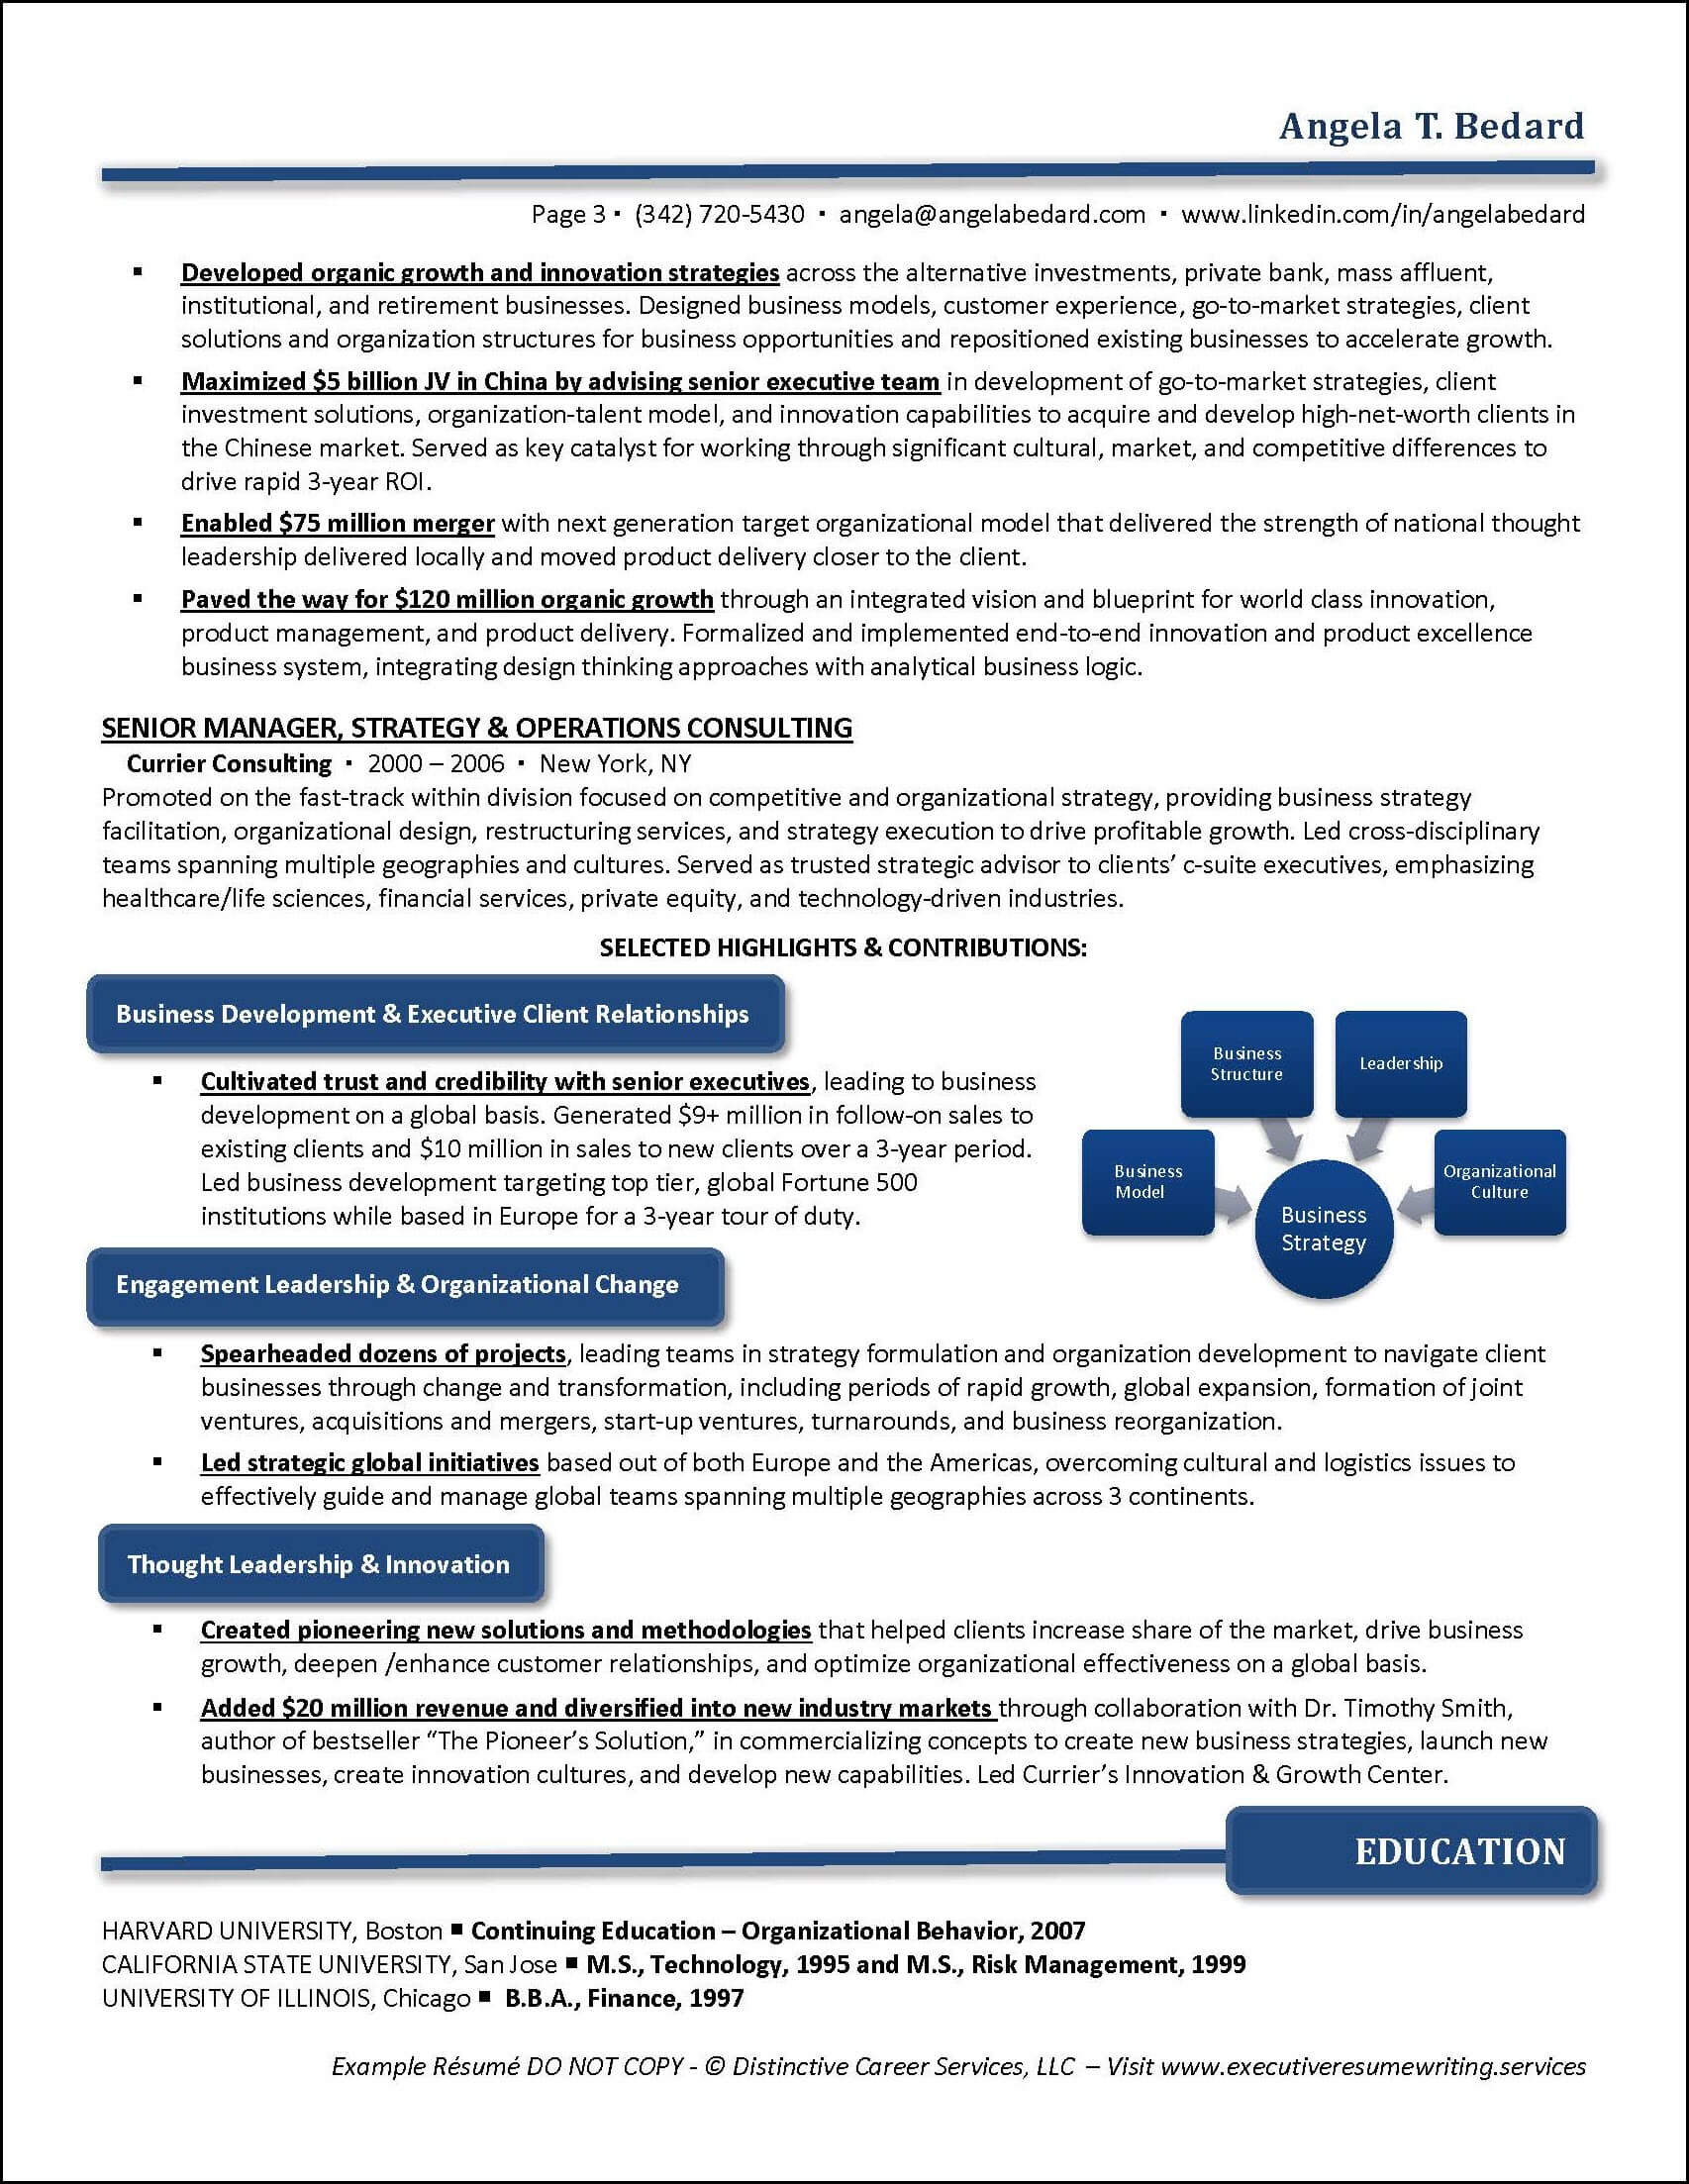 Example Management Consulting Executive Resume pg 3